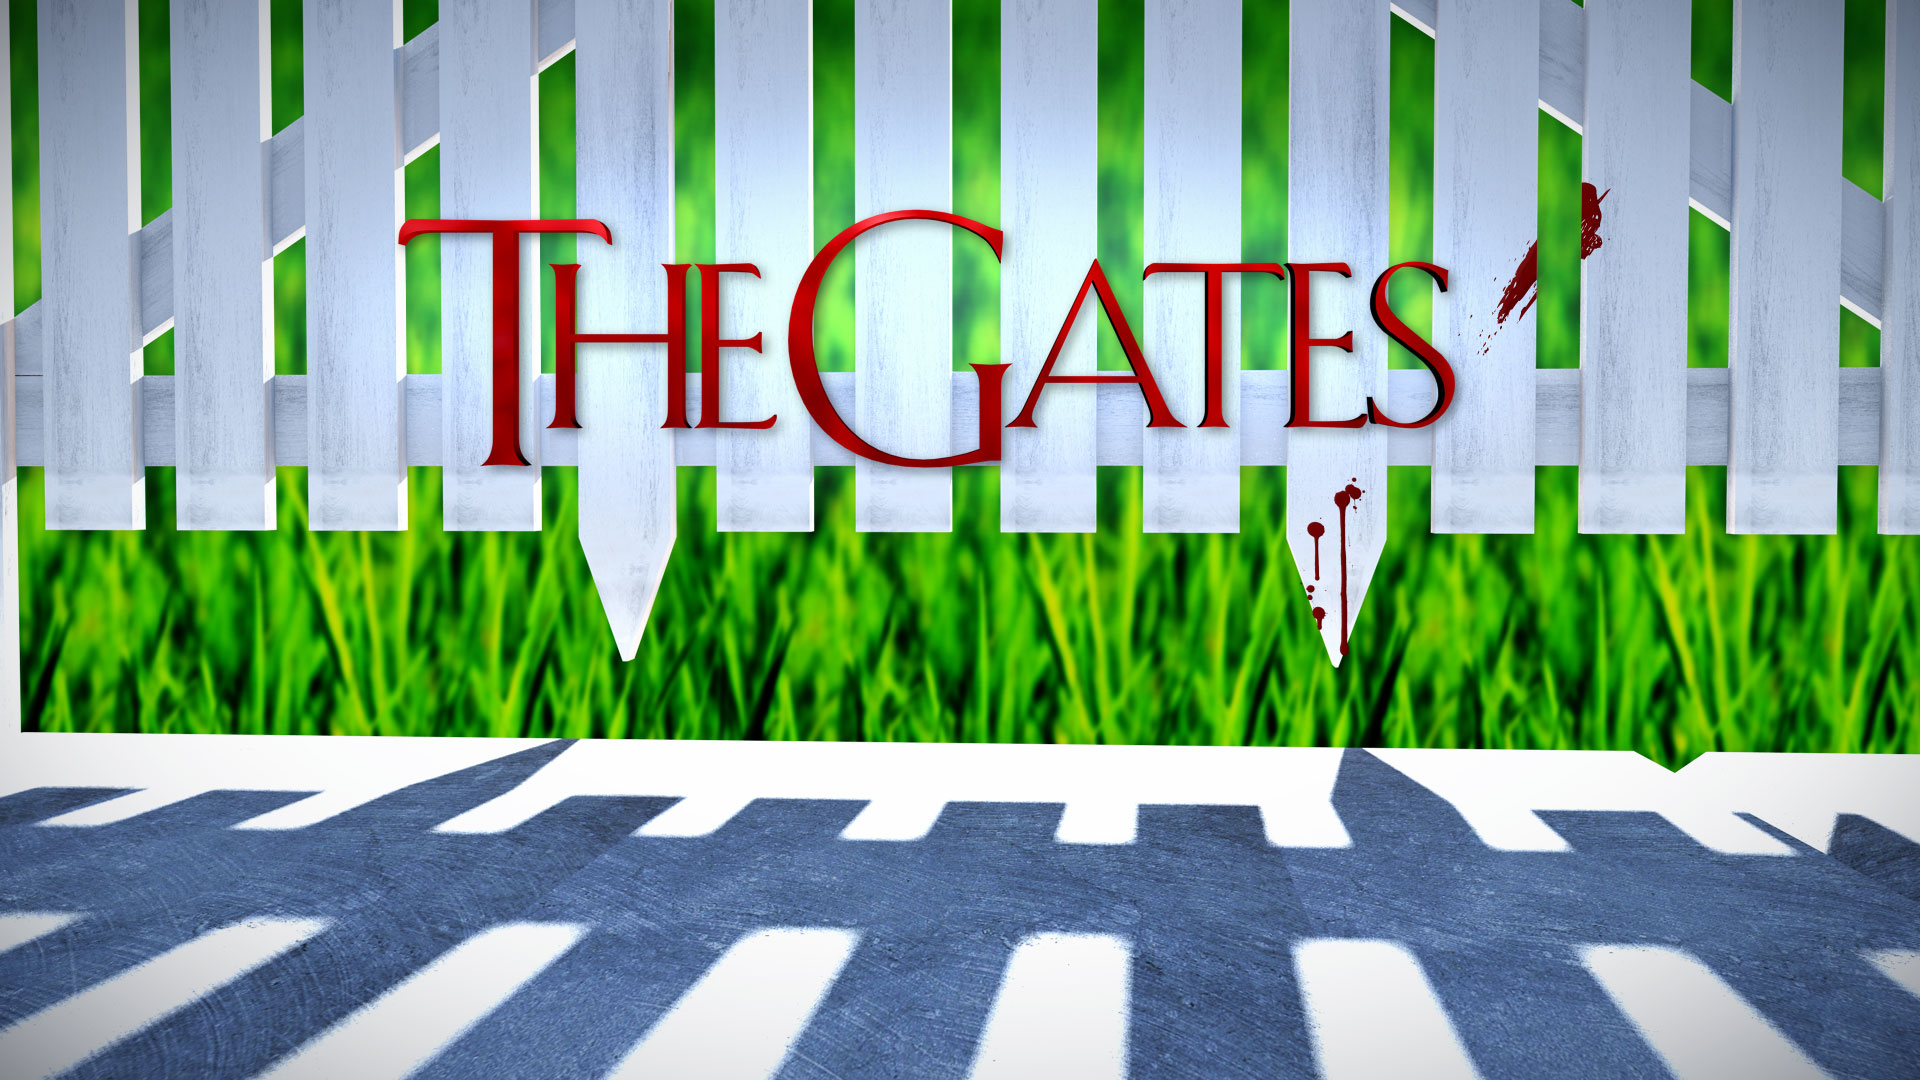 GATES_Logo02_PicketFence_mm_v3+(0.00.01.00).jpg